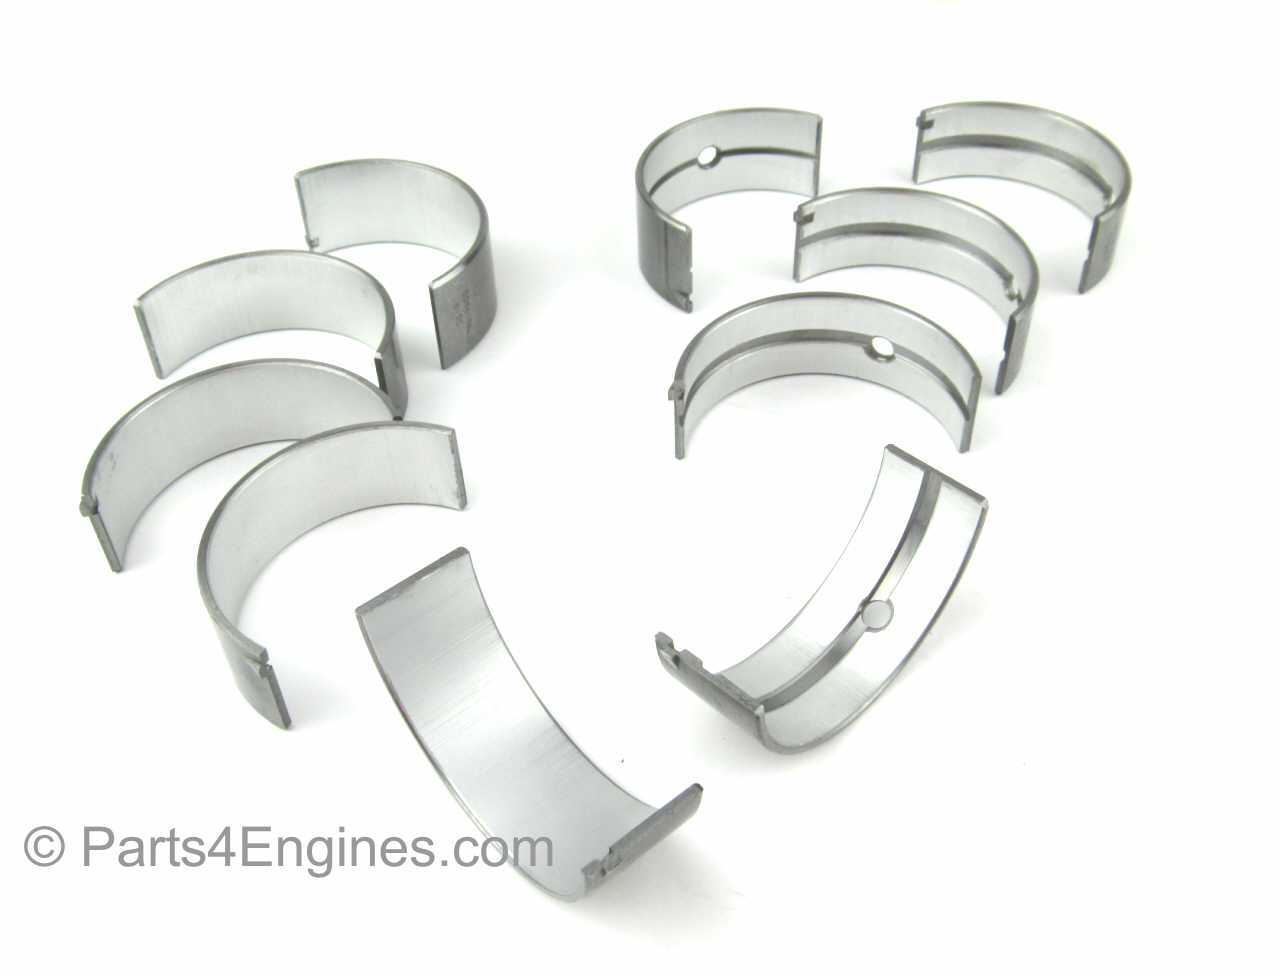 Volvo Penta TMD22 Main bearings from parts4engines.com